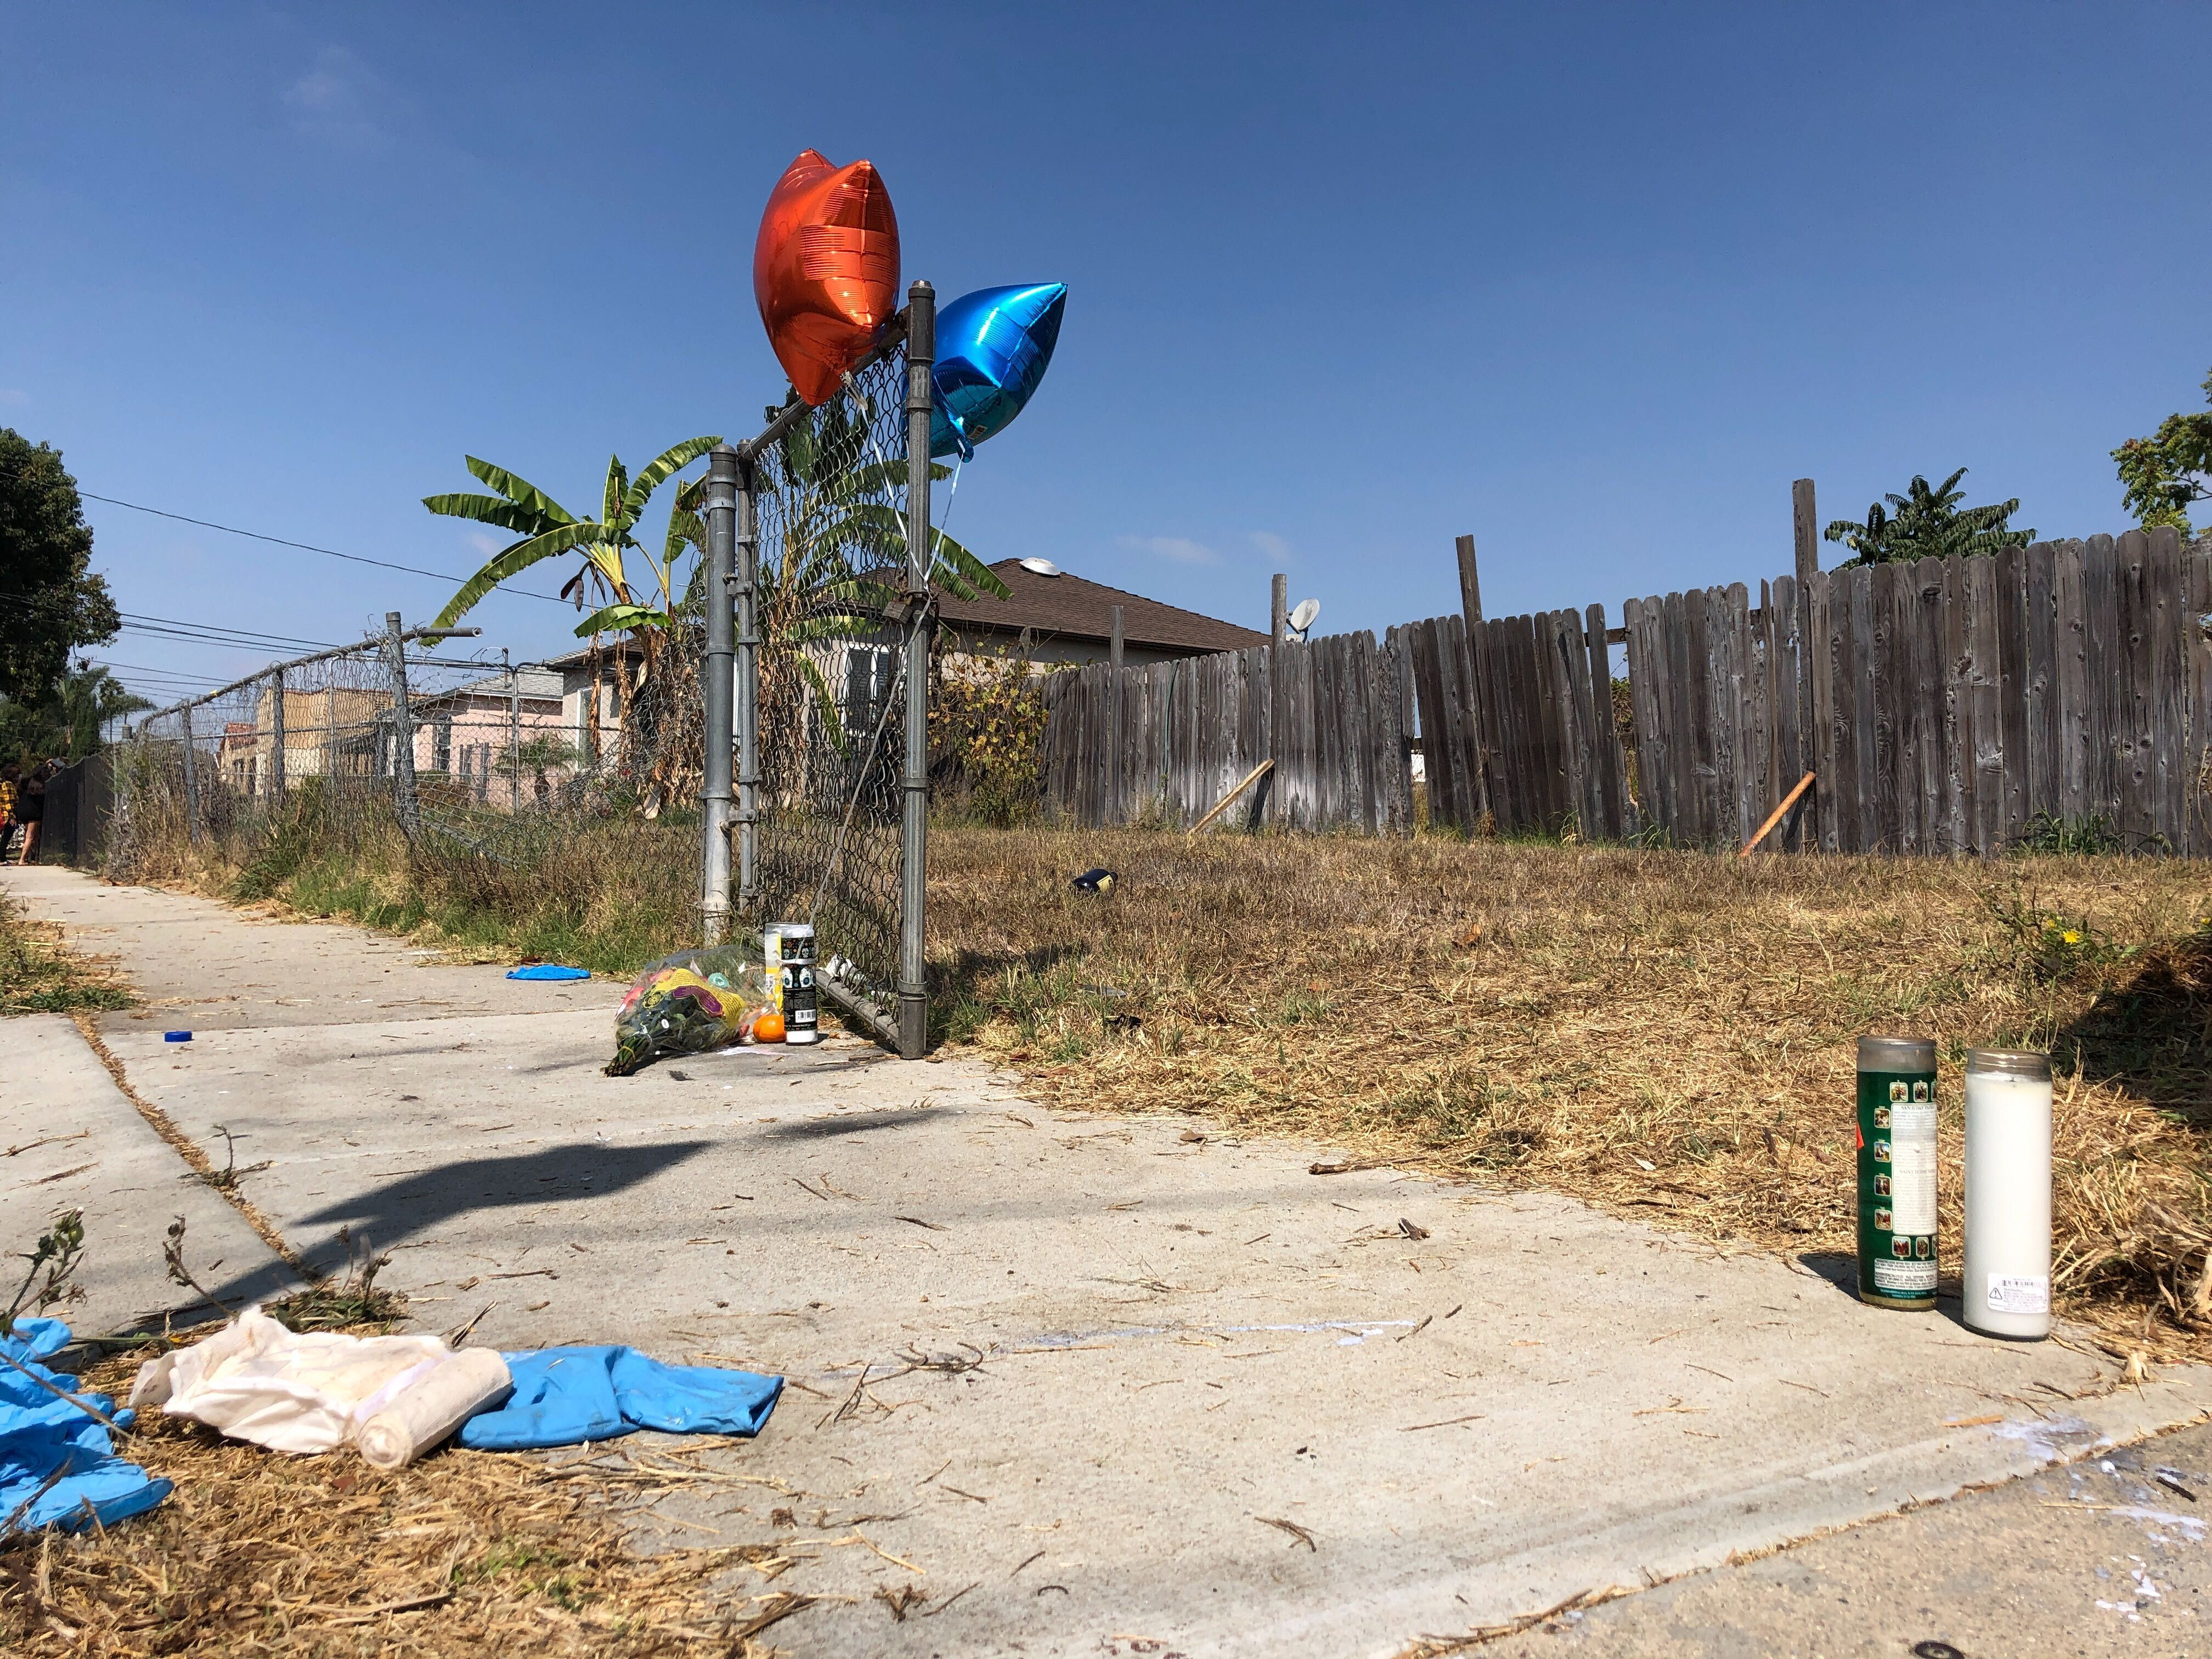 Balloons, candles and flowers are left on Sept. 1, 2020, as a memorial for Dijon Kizzee where he was fatally shot by Los Angeles Sheriff's deputies in the Westmont section of Los Angeles.